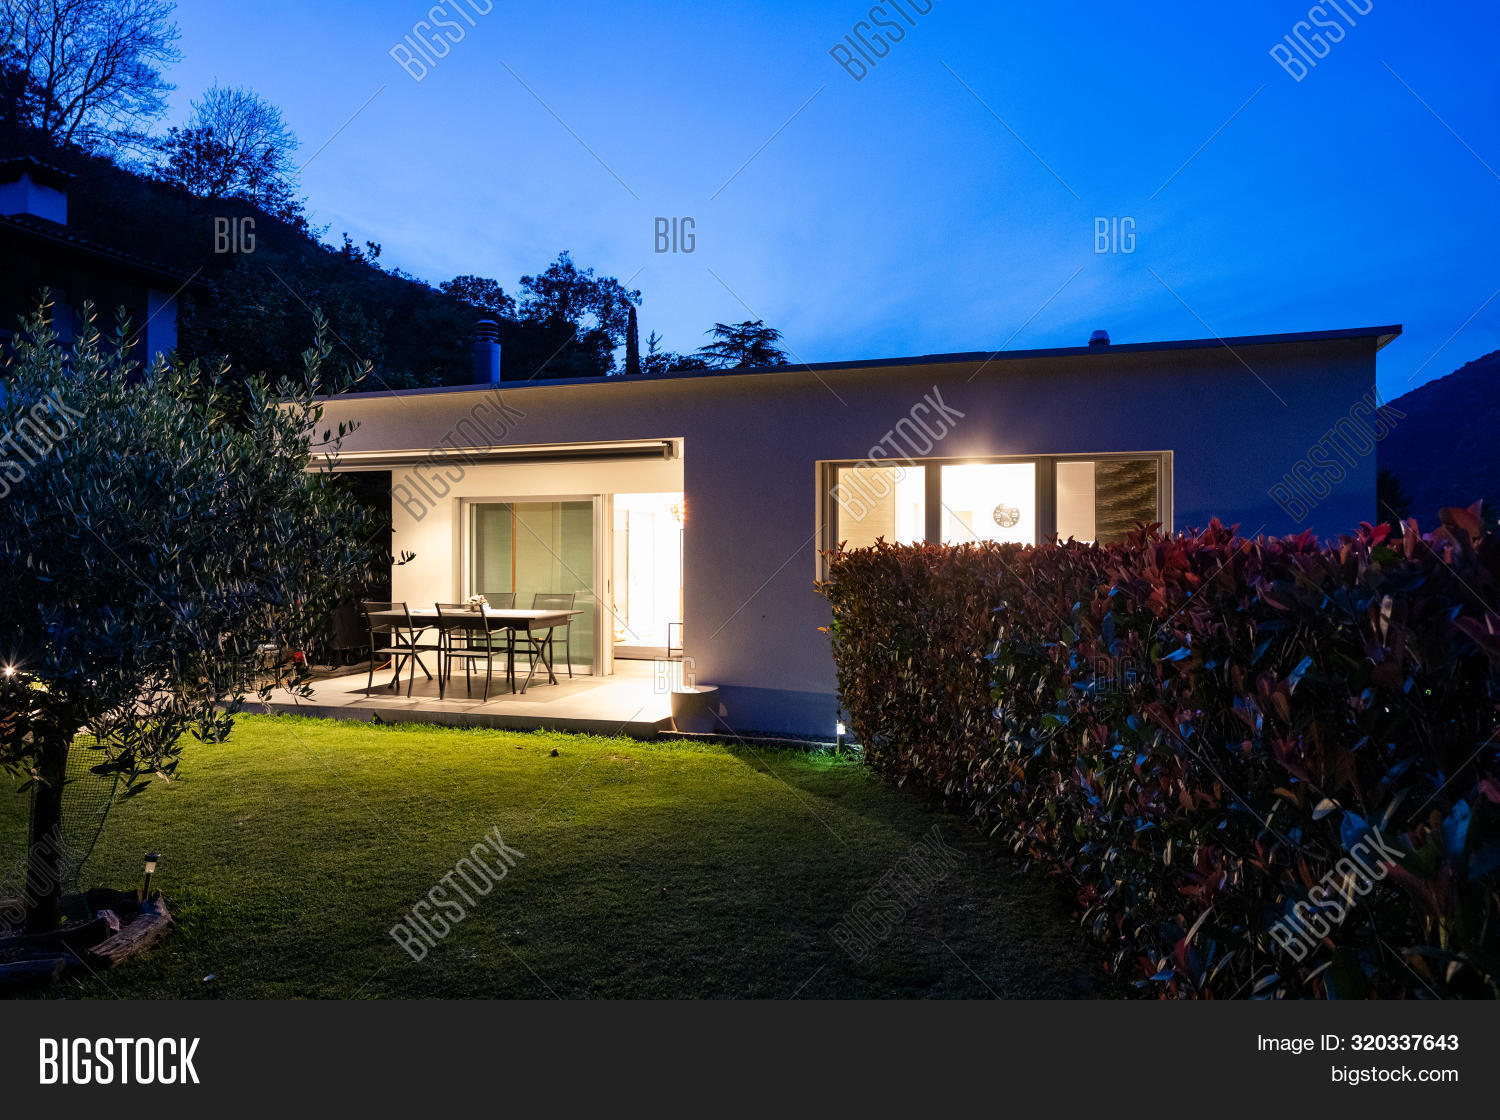 Exterior Small Modern Image Photo Free Trial Bigstock